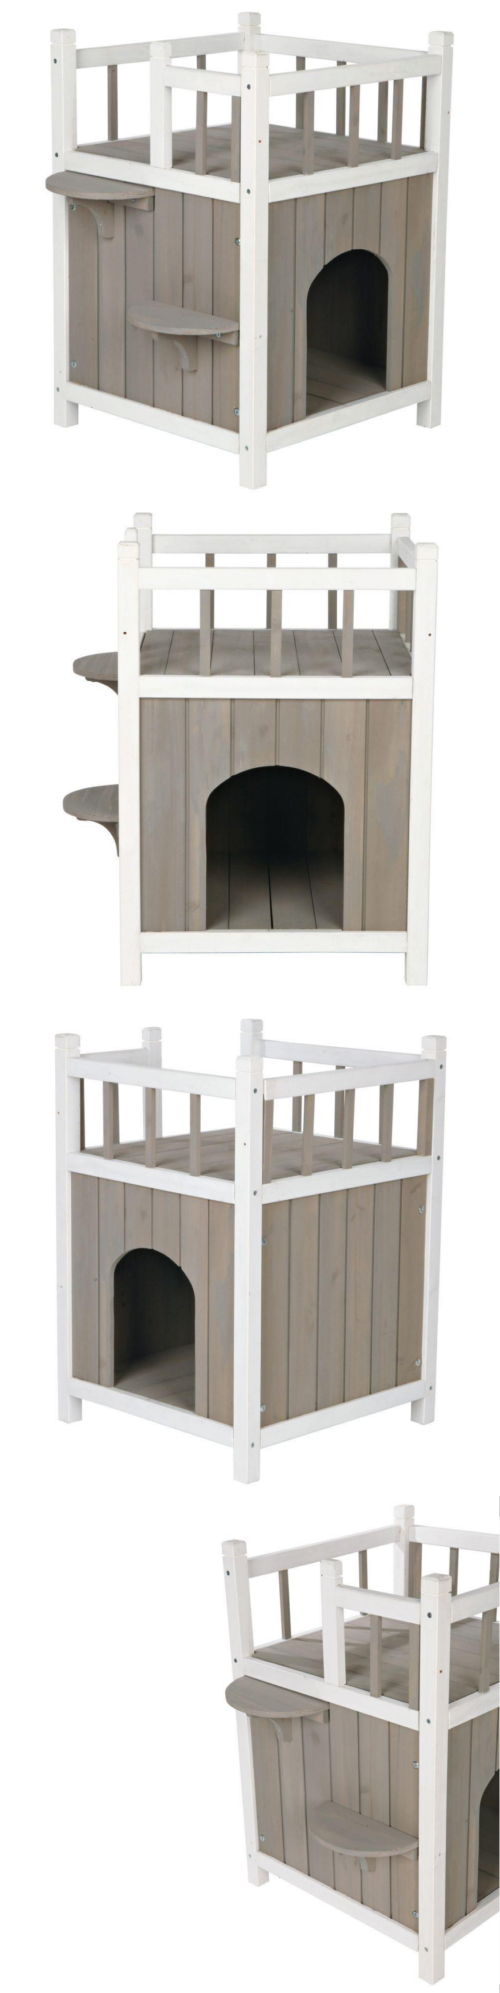 Cat Lover Products 117422: Cat House Furniture 2 Story Play ...